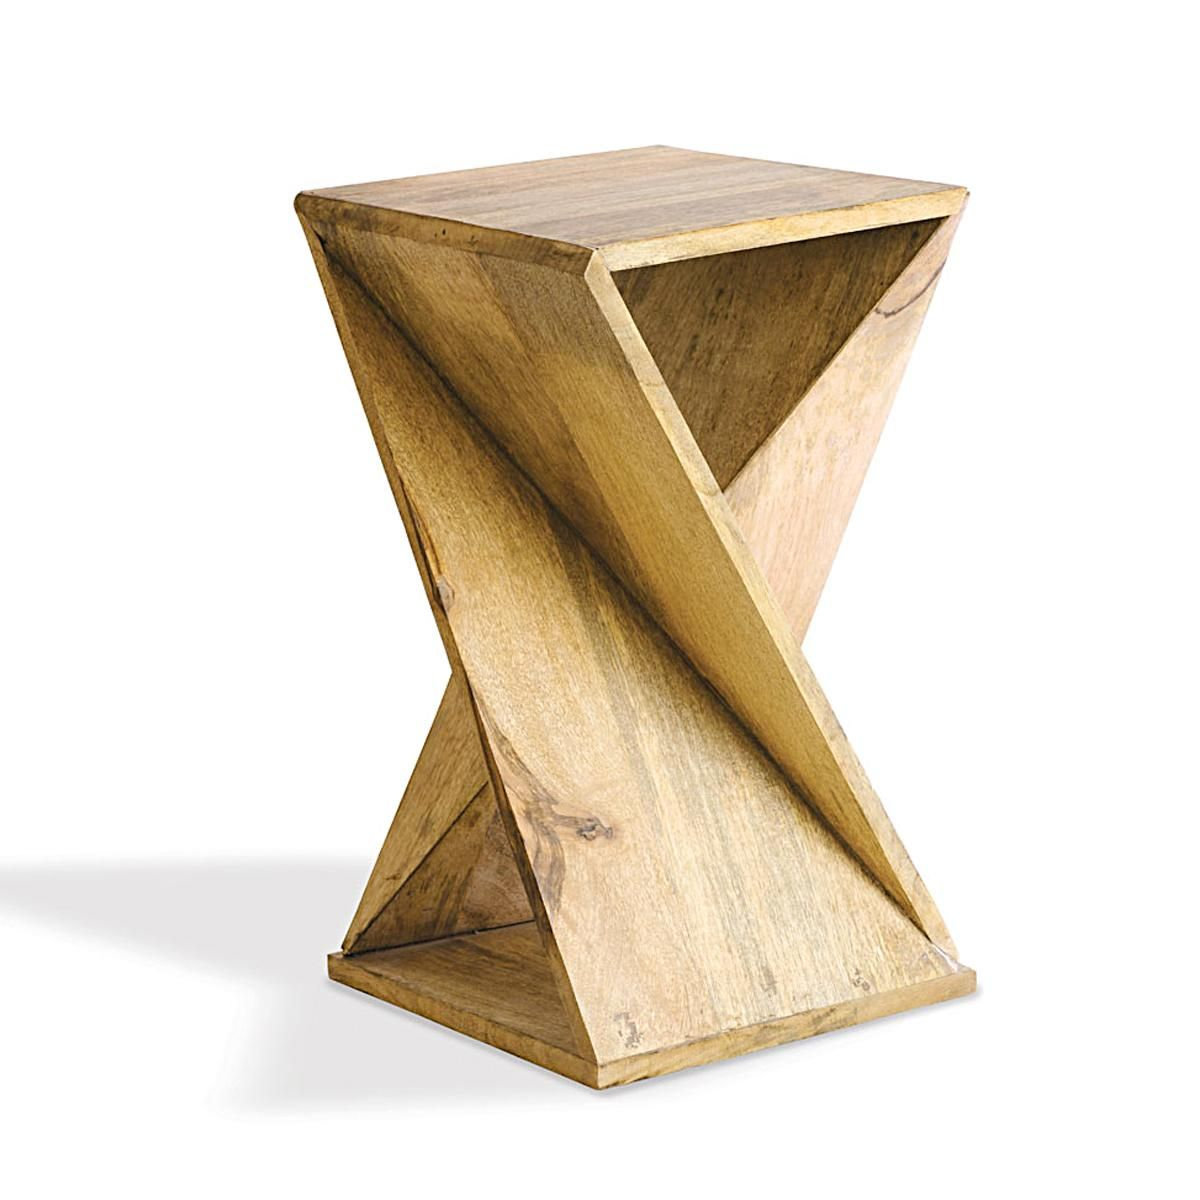 Cool wood furniture - Banco Origami M S